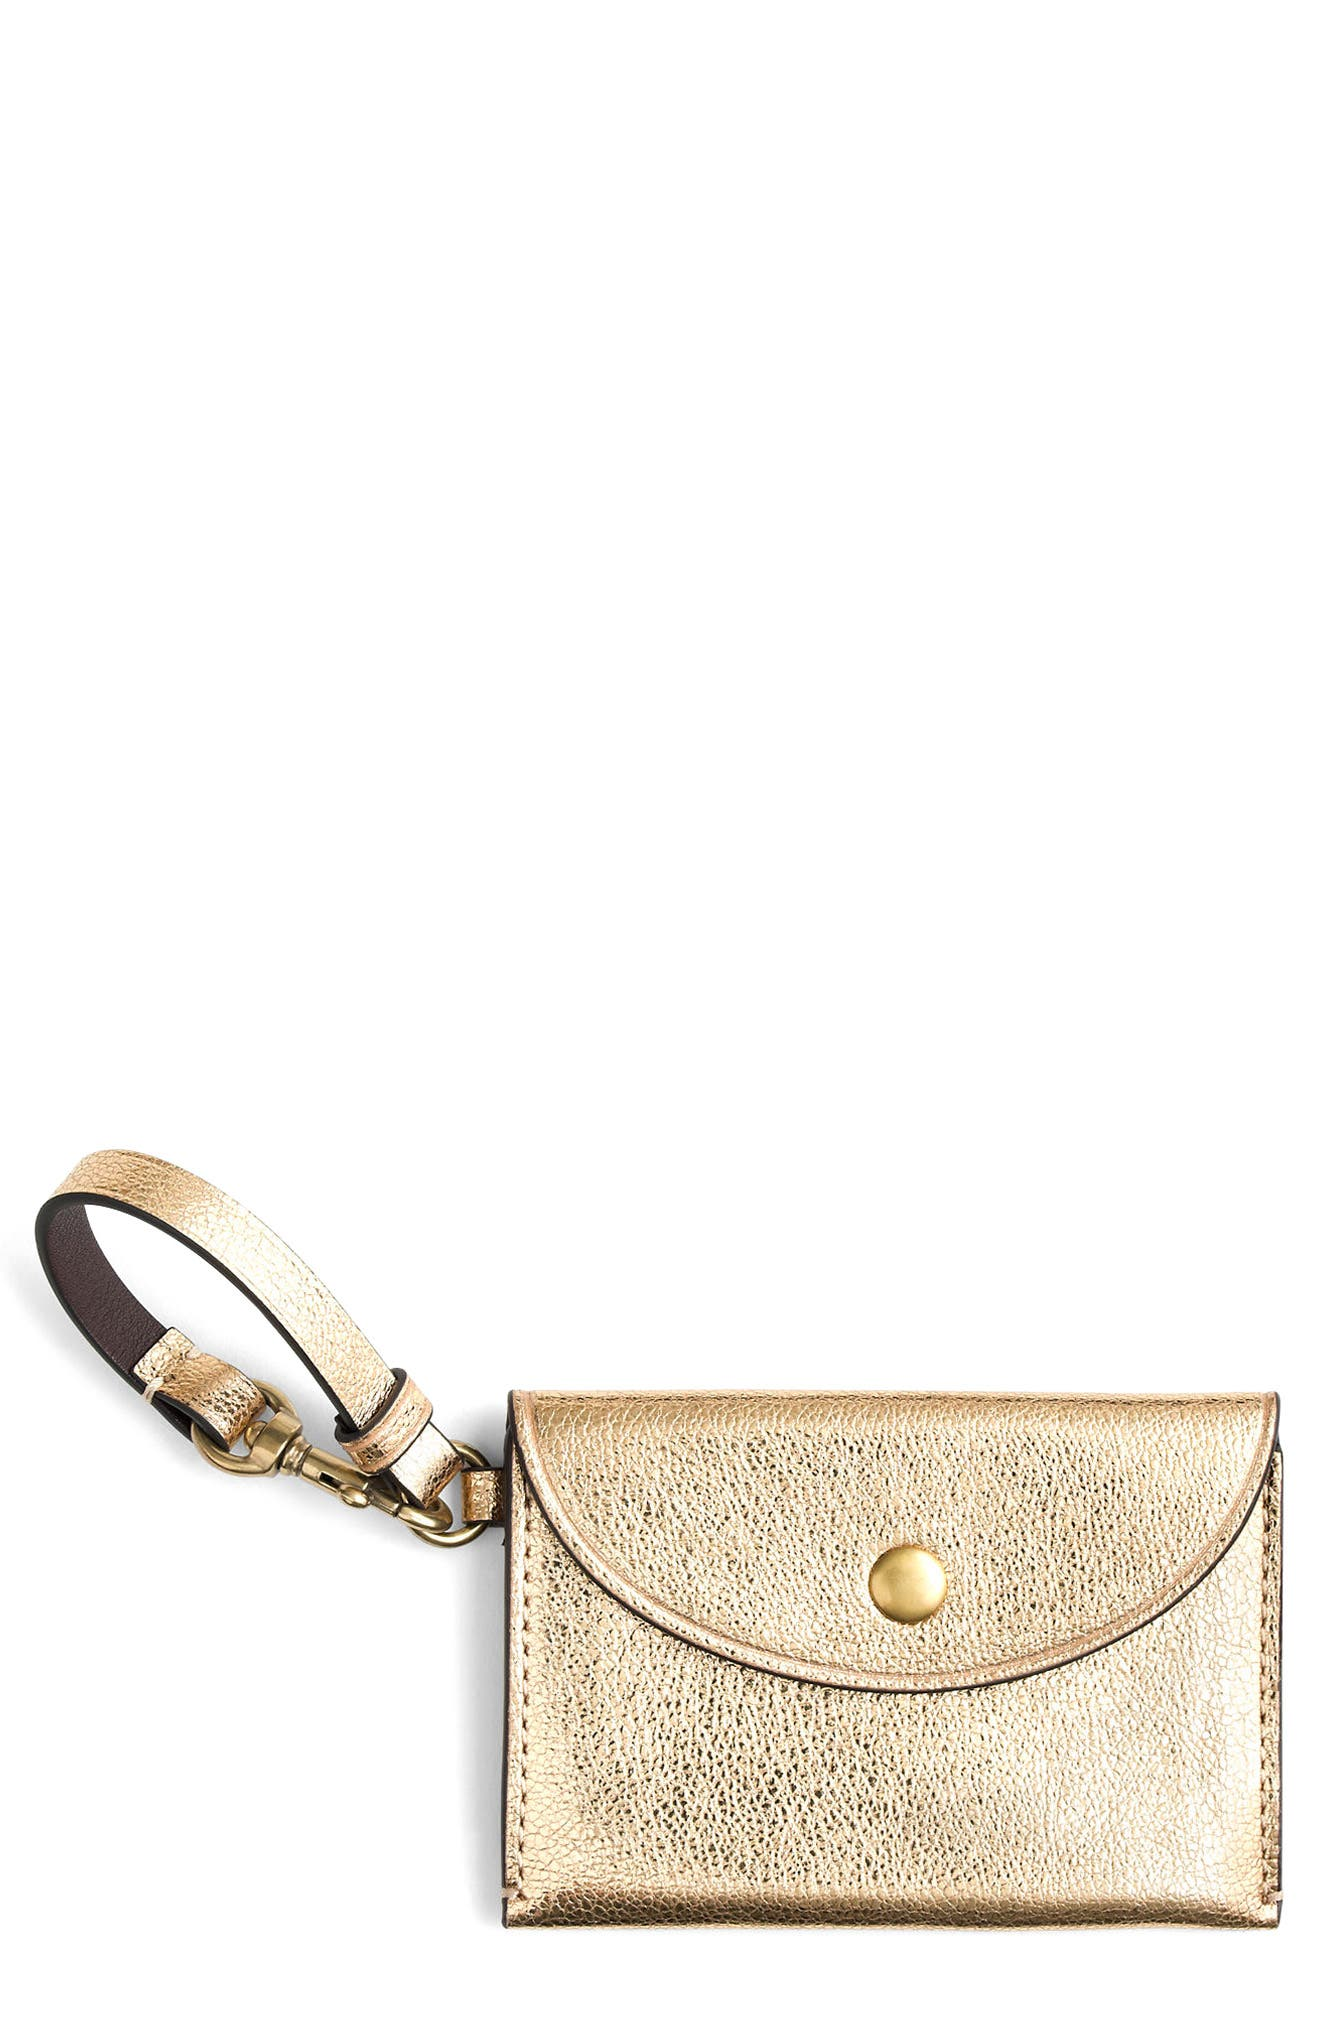 J.Crew Metallic Leather Coin Purse